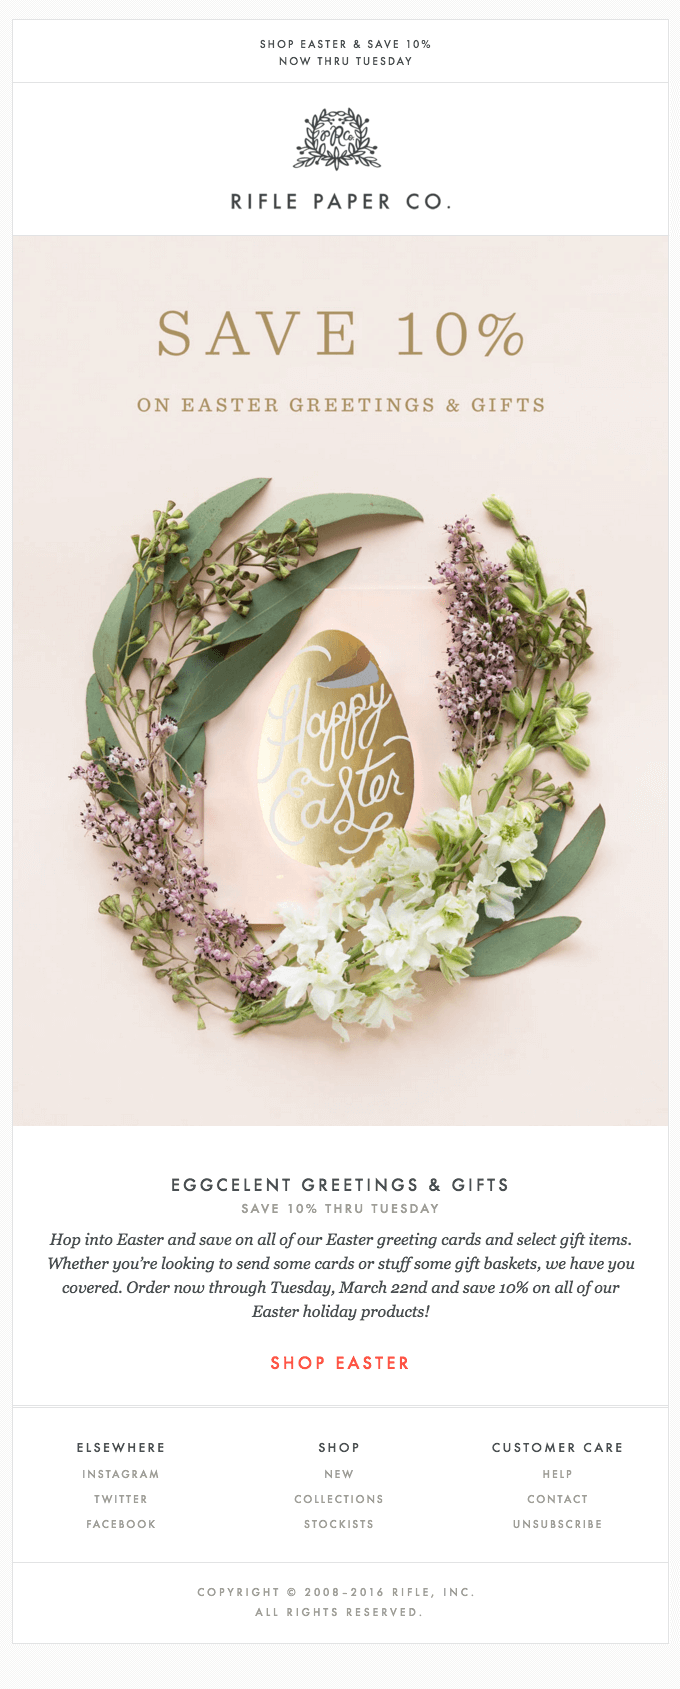 Easter email campaign inspiration - Rifle Paper Co.